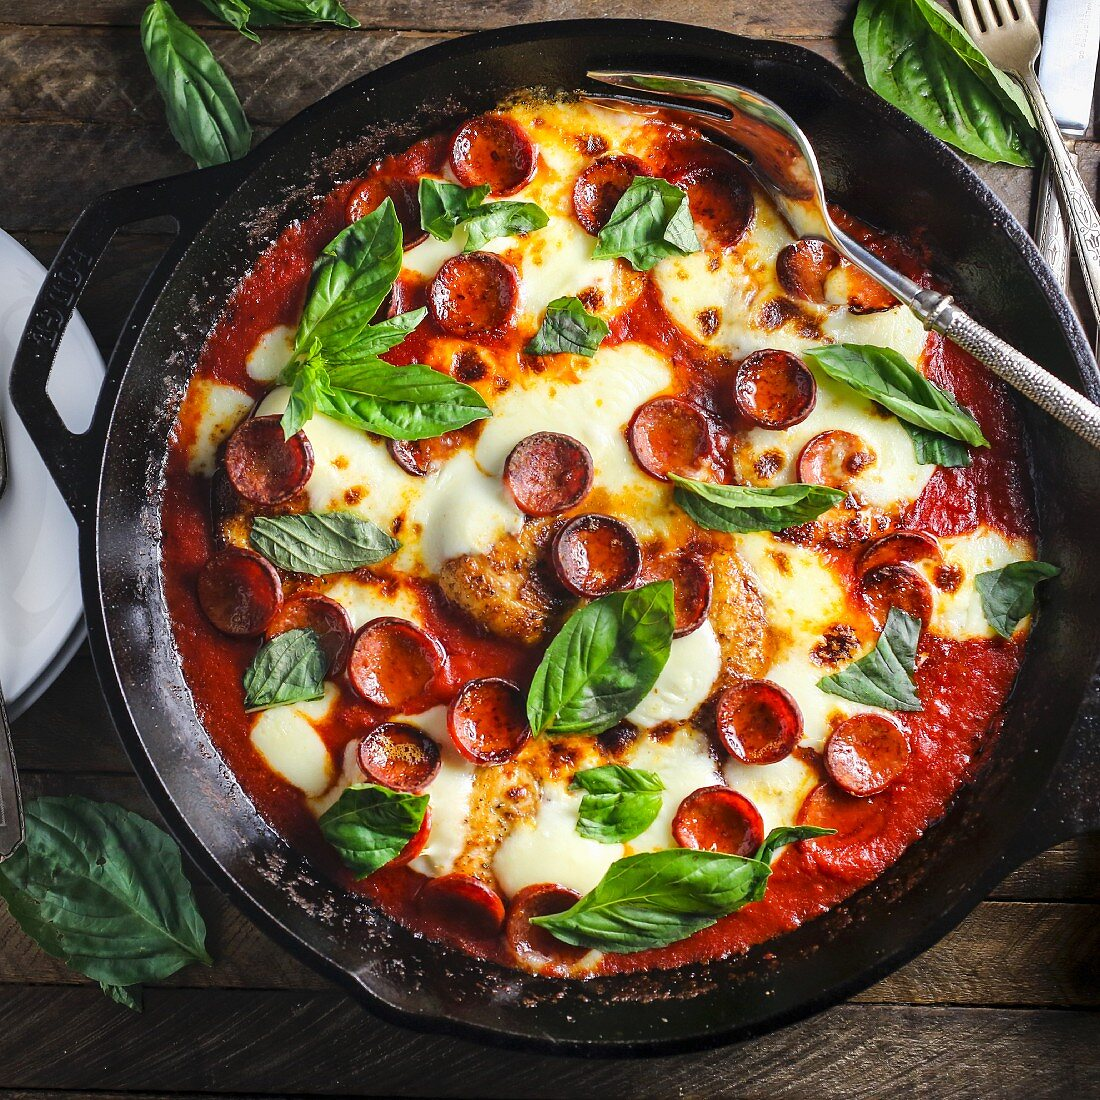 Pizza-style chicken in a pan